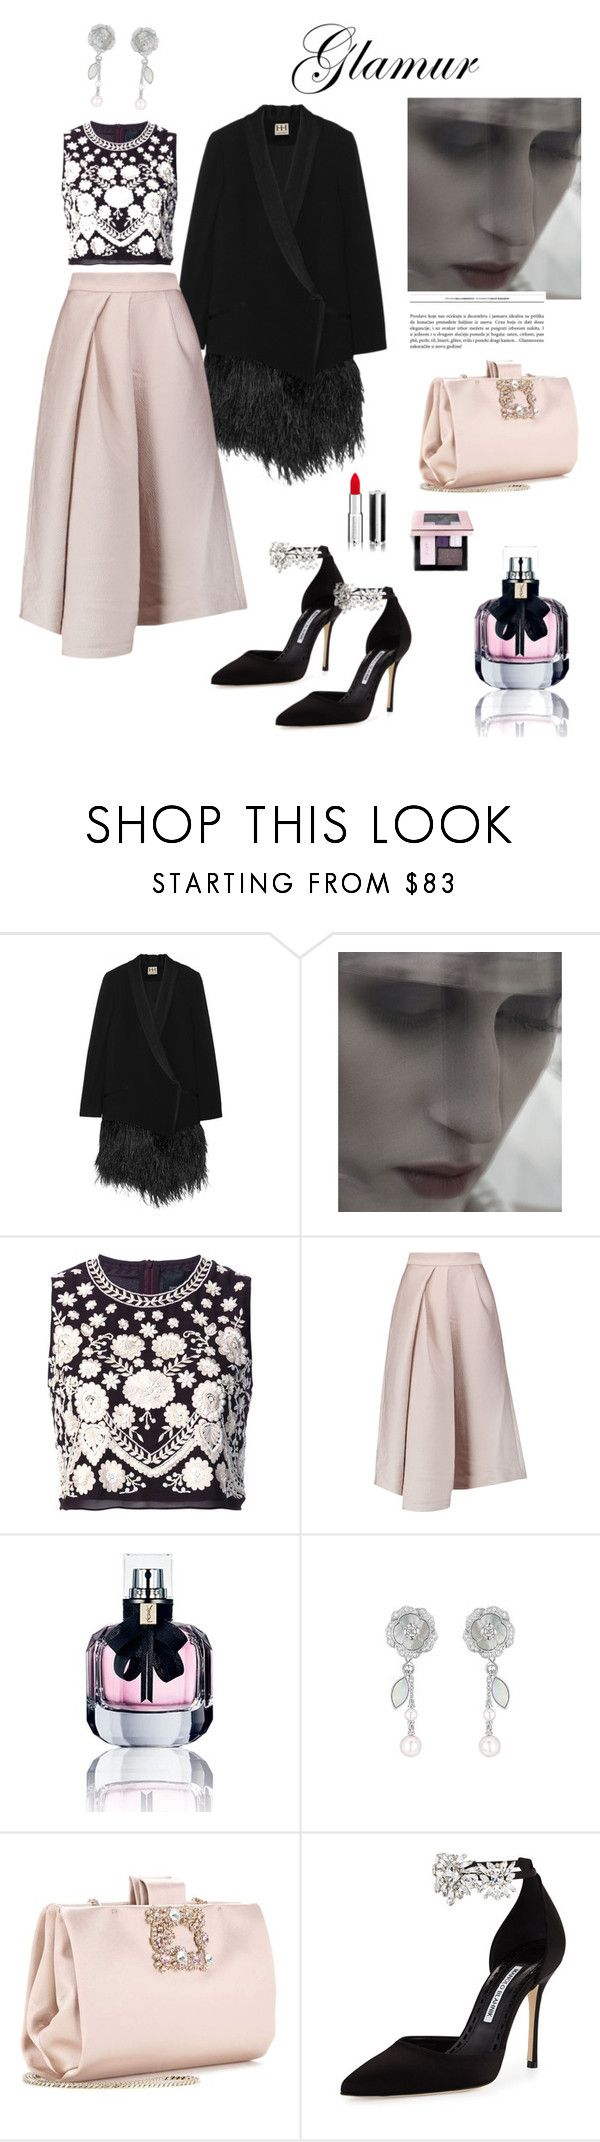 """""""I Dream of my dream come true."""" by chrismay-468 on Polyvore featuring Haute Hippie, Needle & Thread, TIBI, Yves Saint Laurent, Chanel, Roger Vivier, Manolo Blahnik and Givenchy"""